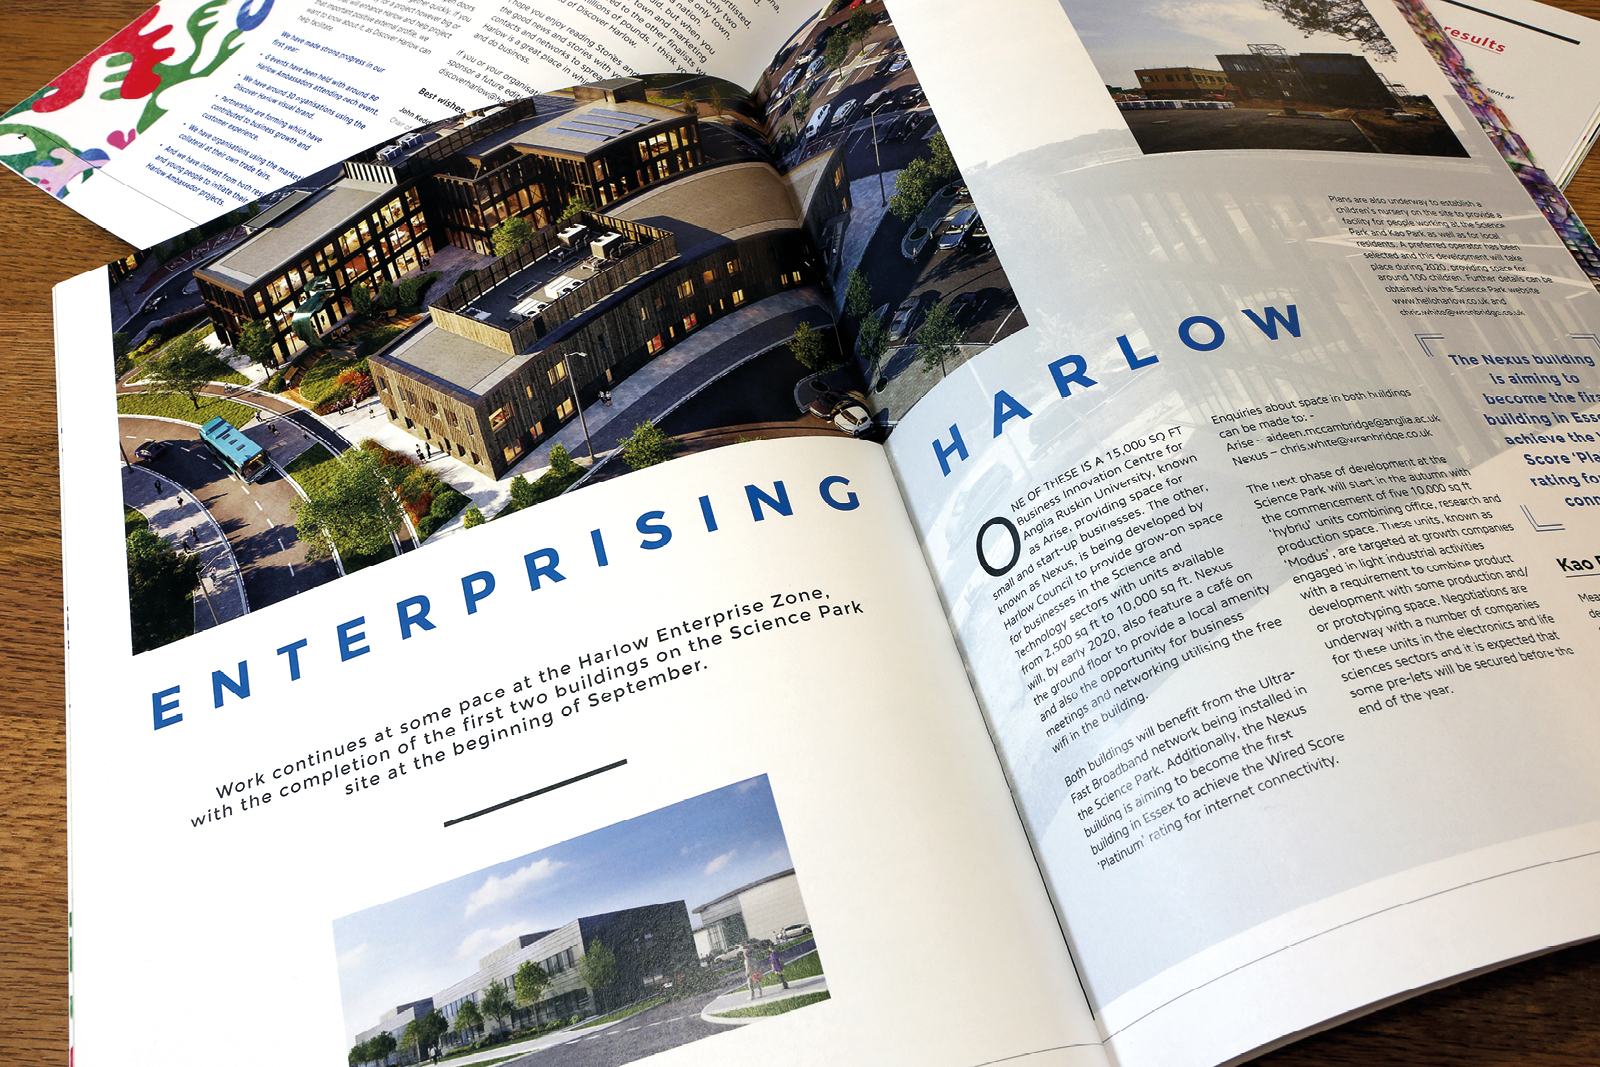 Harlow Stories: Issue 08. Magazine design and production in partnership with Magnificent Stuff and in association with Discover Harlow.